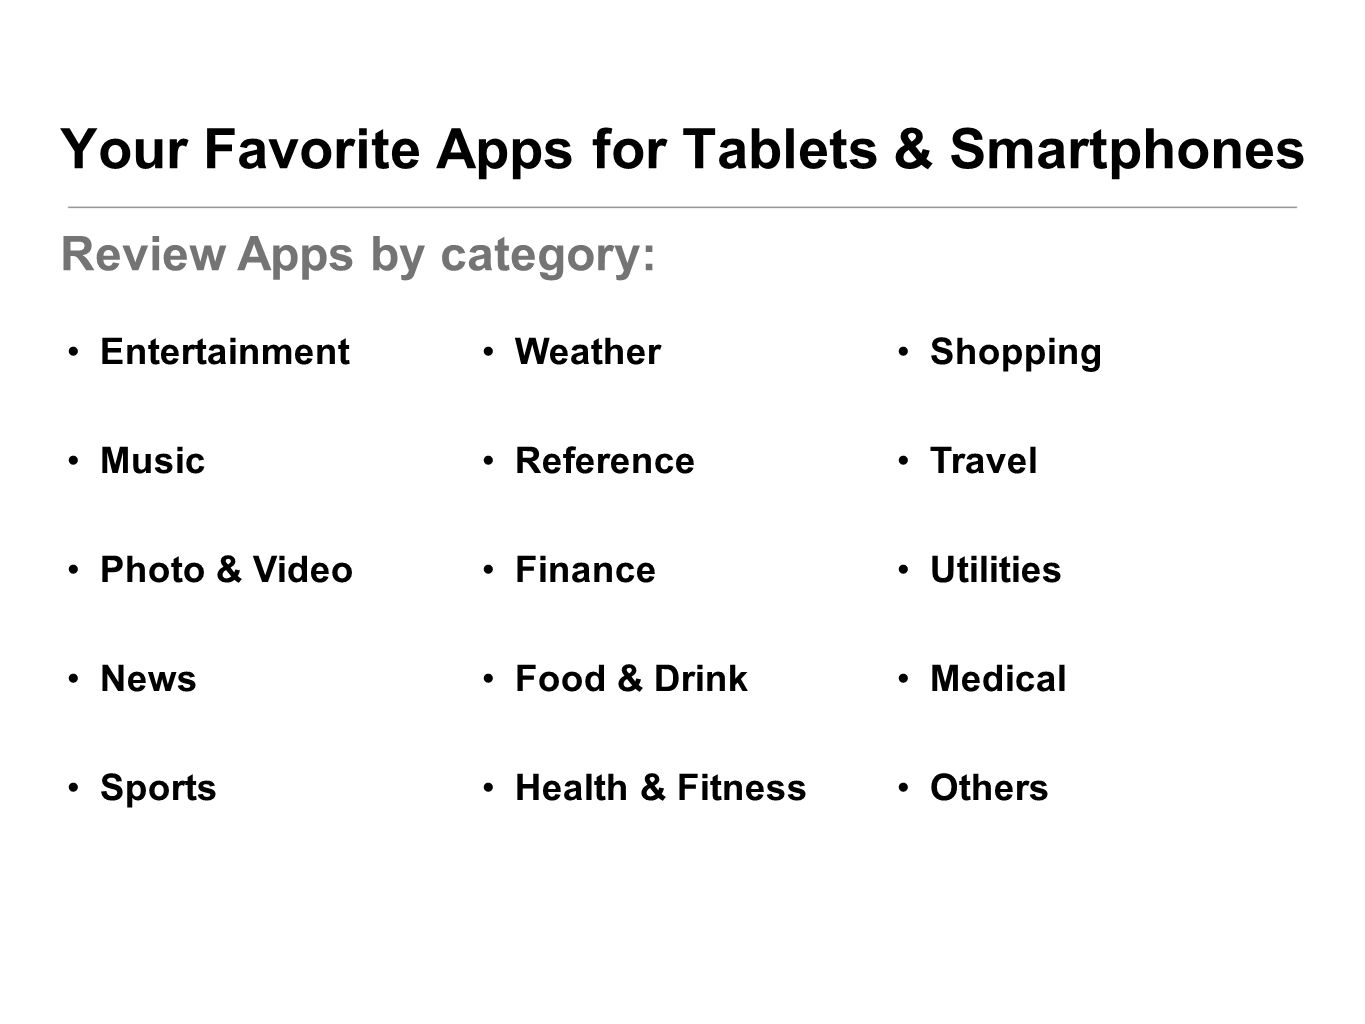 Your Favorite Apps for Tablets & Smartphones Review Apps by category: Entertainment Music Photo & Video News Sports Weather Reference Finance Food & Drink Health & Fitness Shopping Travel Utilities Medical Others